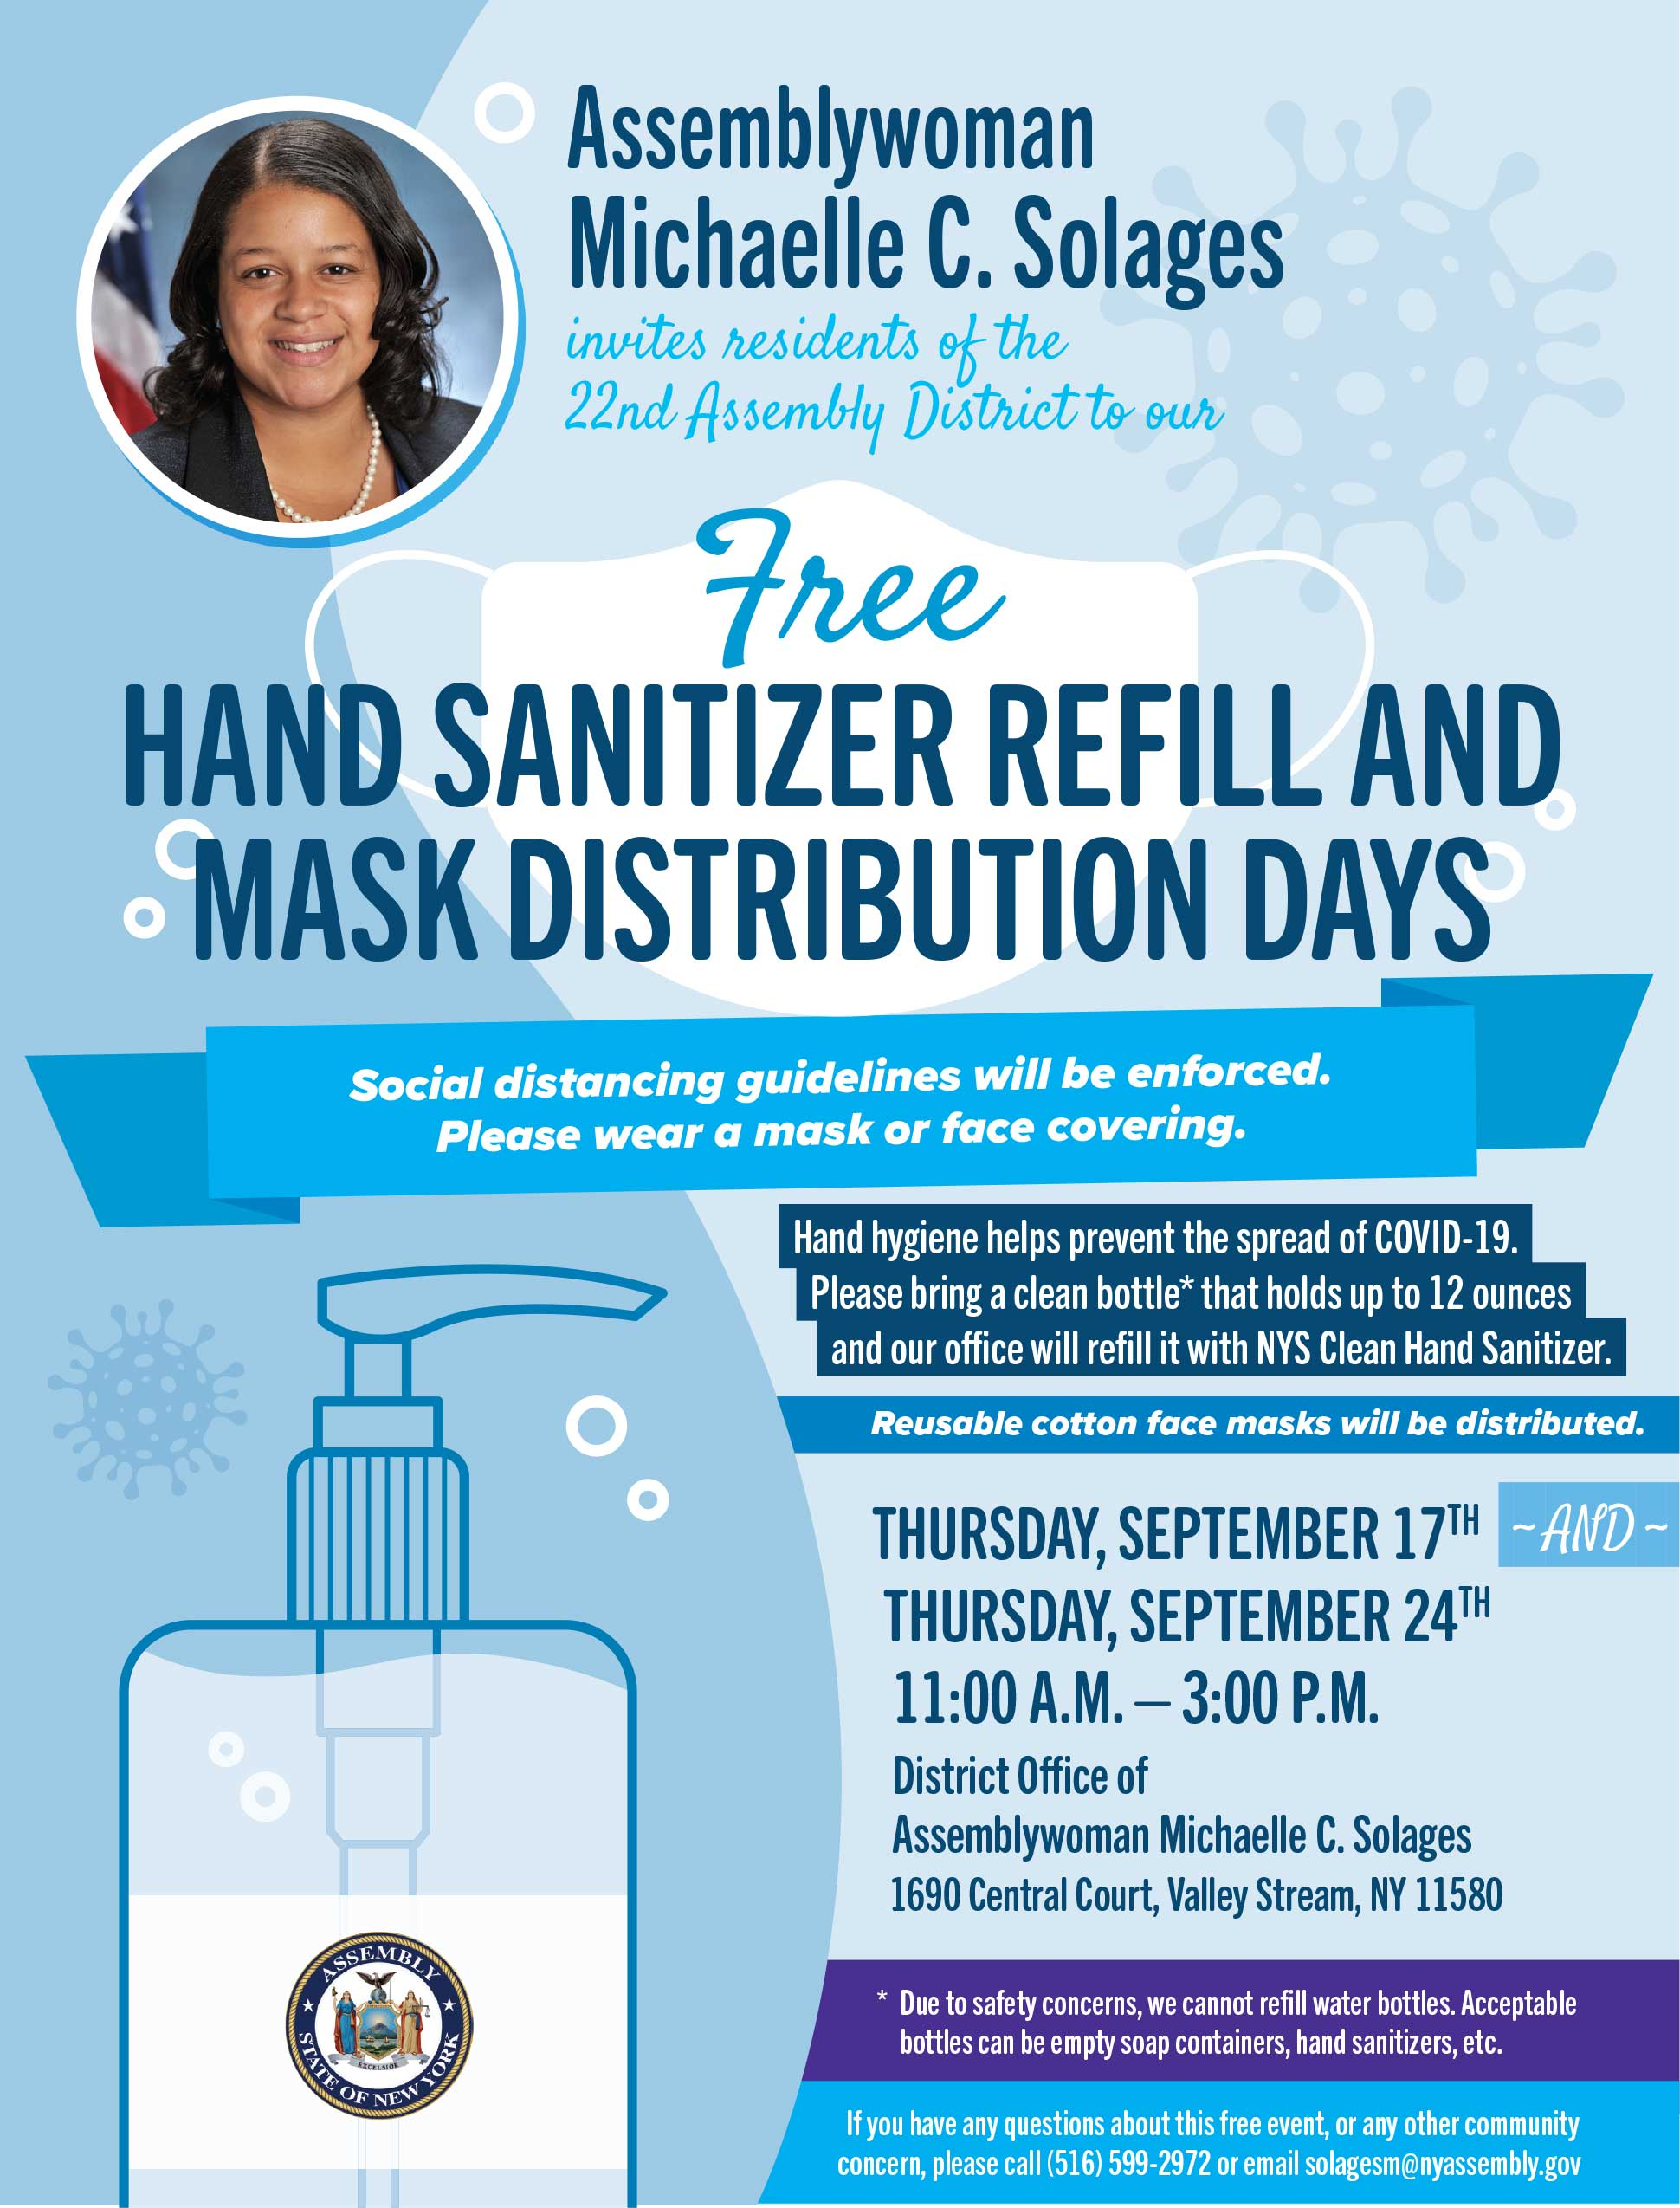 Hand Sanitizer Refill And Mask Distribution Days